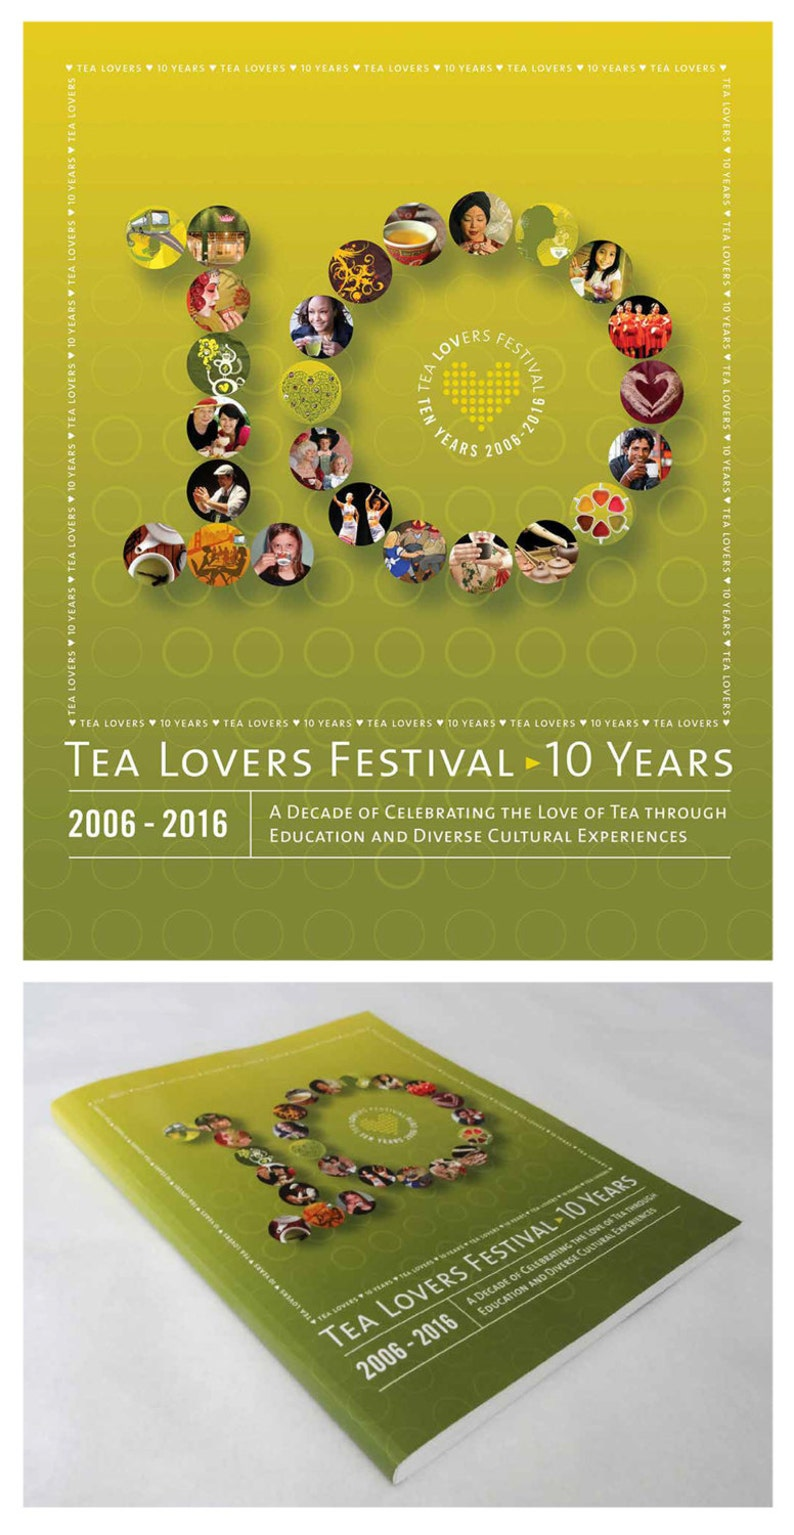 Tea Lovers Festival: 10 Years  Soft Cover Version image 0